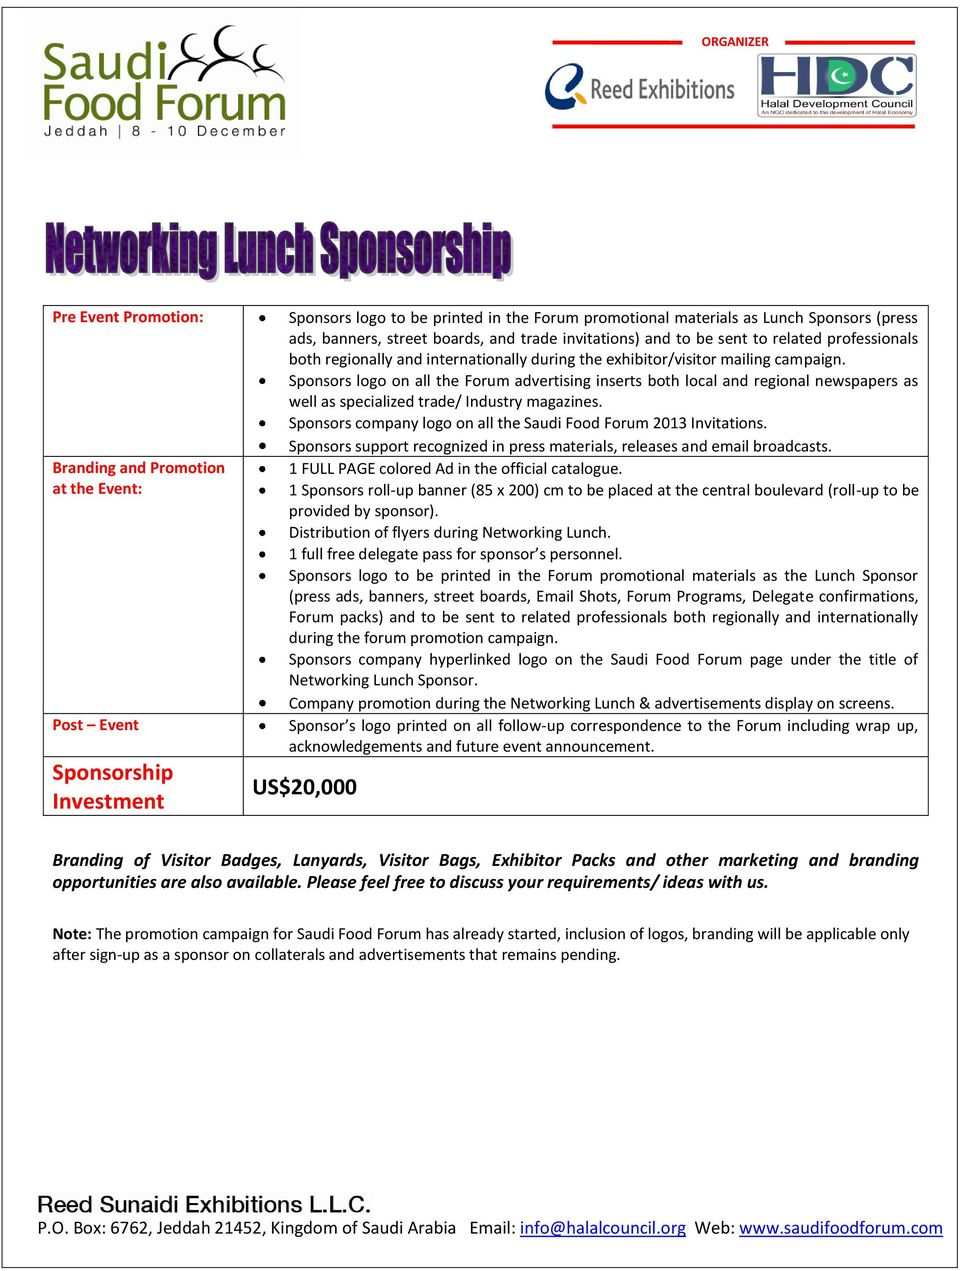 Sponsors logo on all the Forum advertising inserts both local and regional newspapers as well as specialized trade/ Industry Sponsors company logo on all the Saudi Food Forum 2013 Invitations.